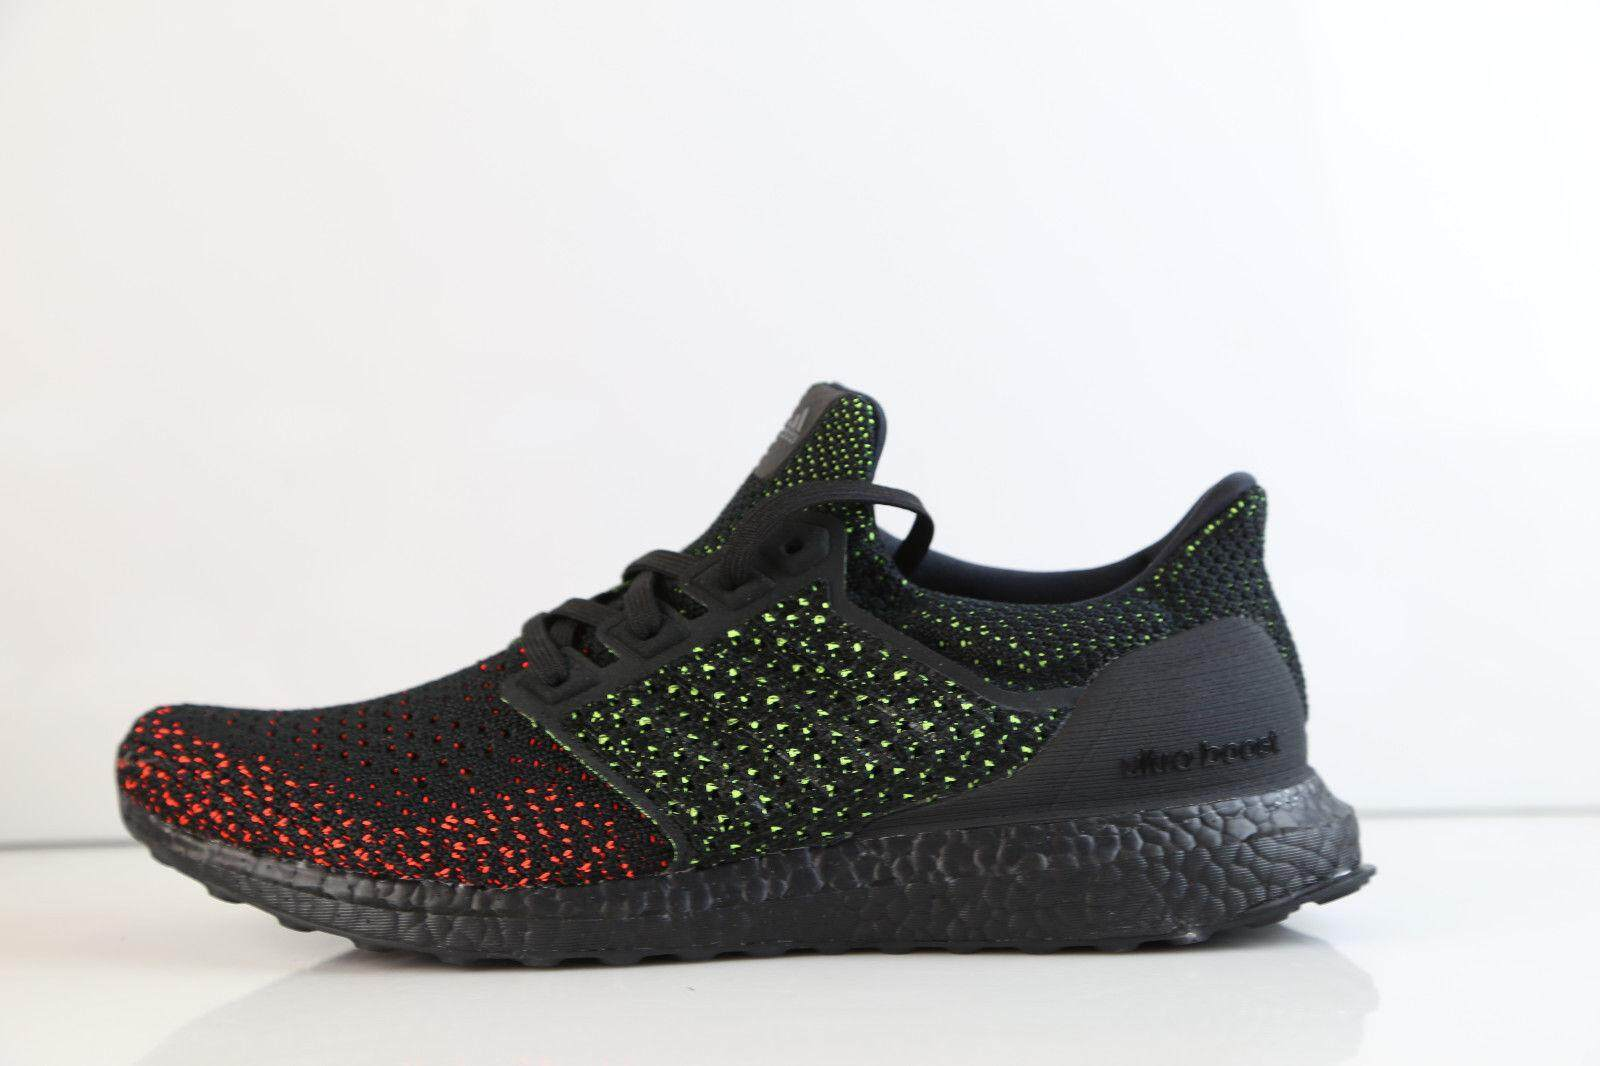 100% authentic 30b8a b9b3b Adidas_Original Ultra Boost Clima Cool Glow Solar Red AQ0482 Ultraboost  Running Shoes